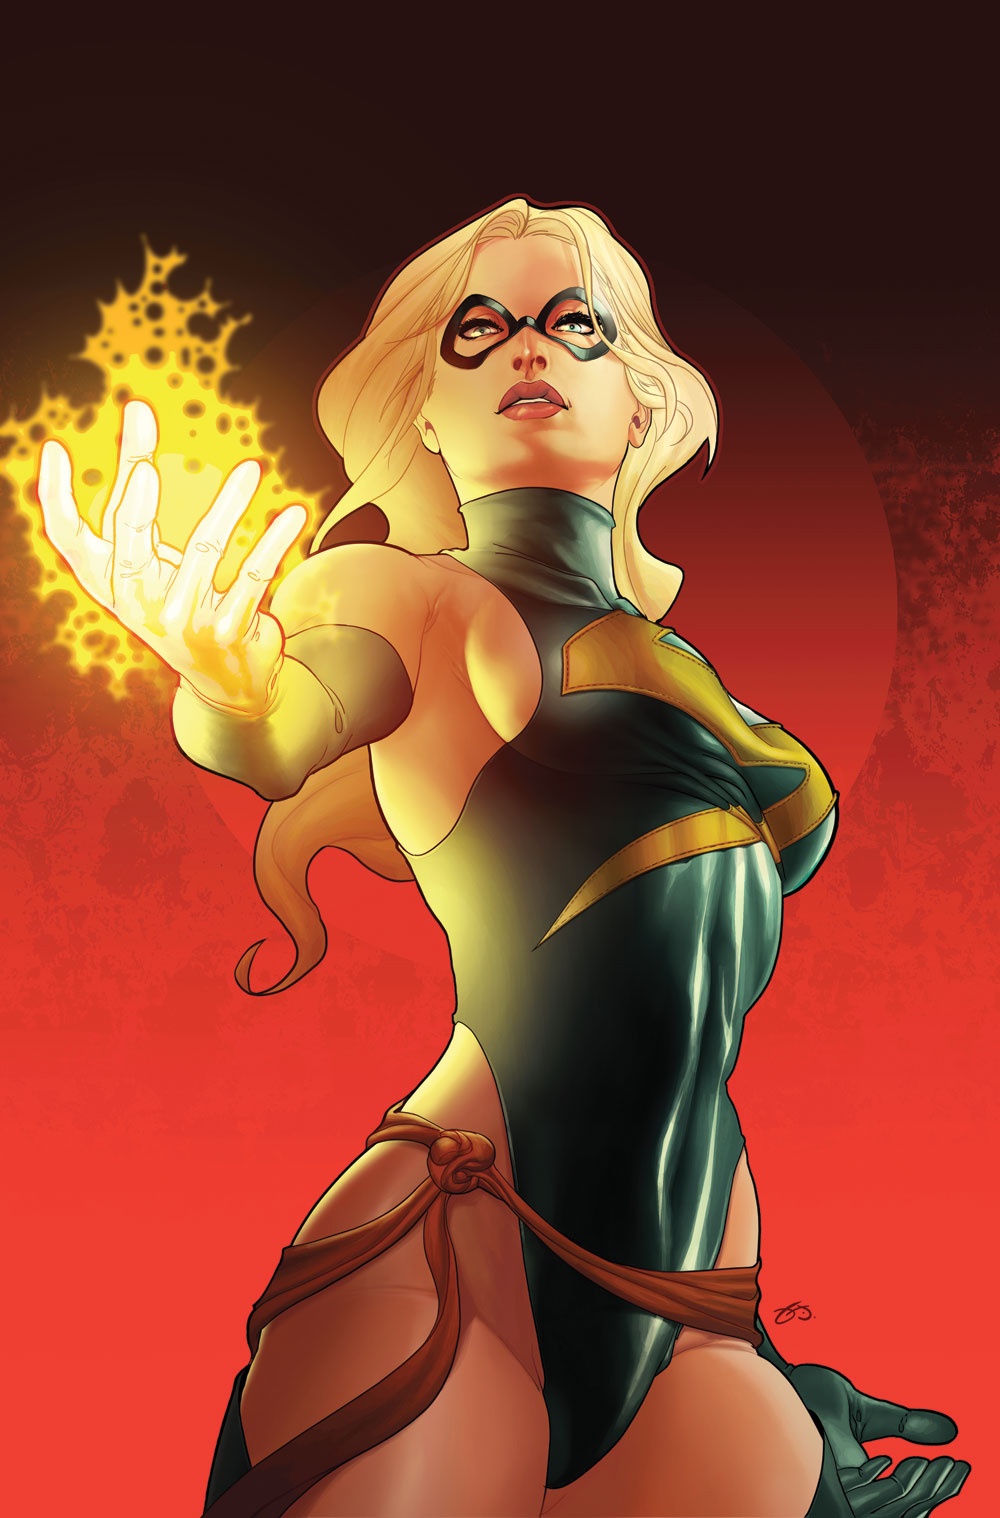 ms-marvel-v2-31-frank-martin-jr